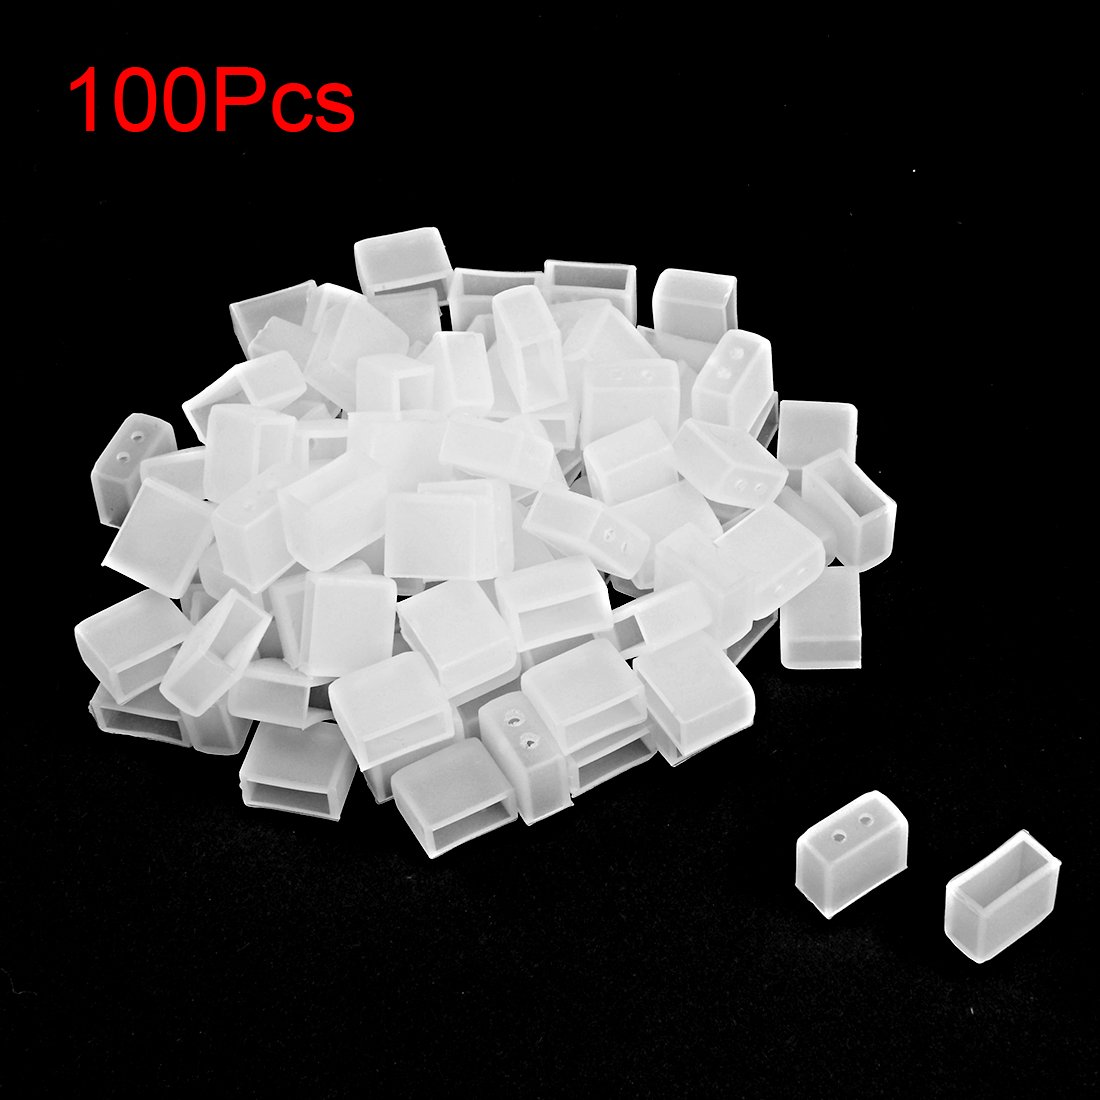 uxcell/® 50pcs Silicone Plug Fit 3528 8mm Wide LED Tube Strip Light End Cap Cover w 2 Holes White